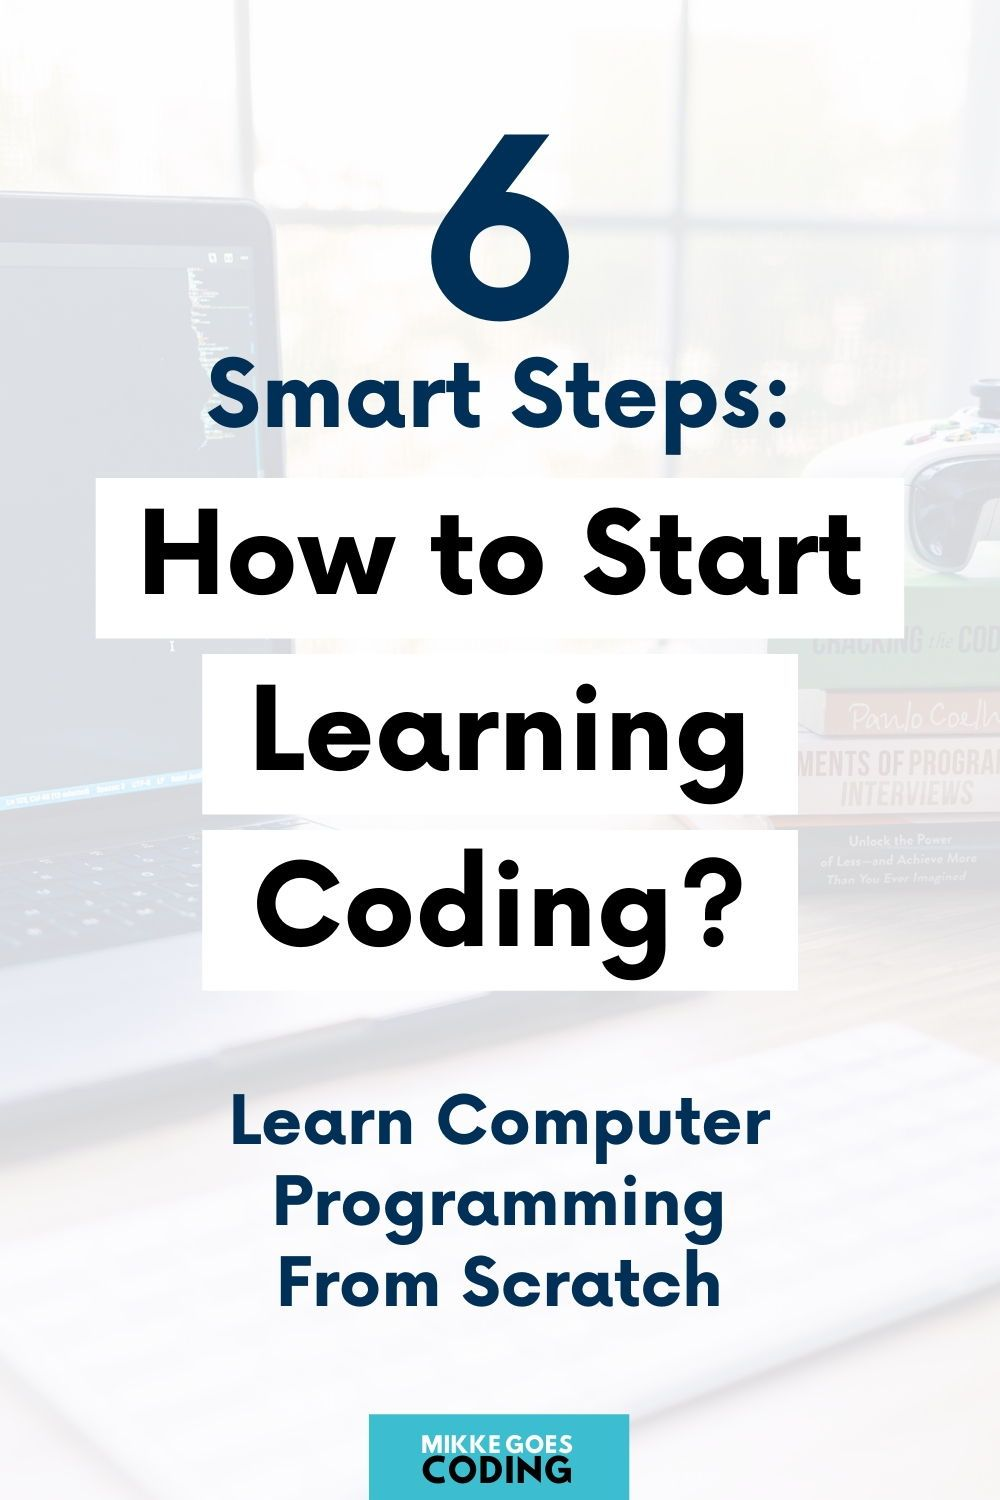 How to Start Learning Coding in 2020? 6 TimeSaving Tips